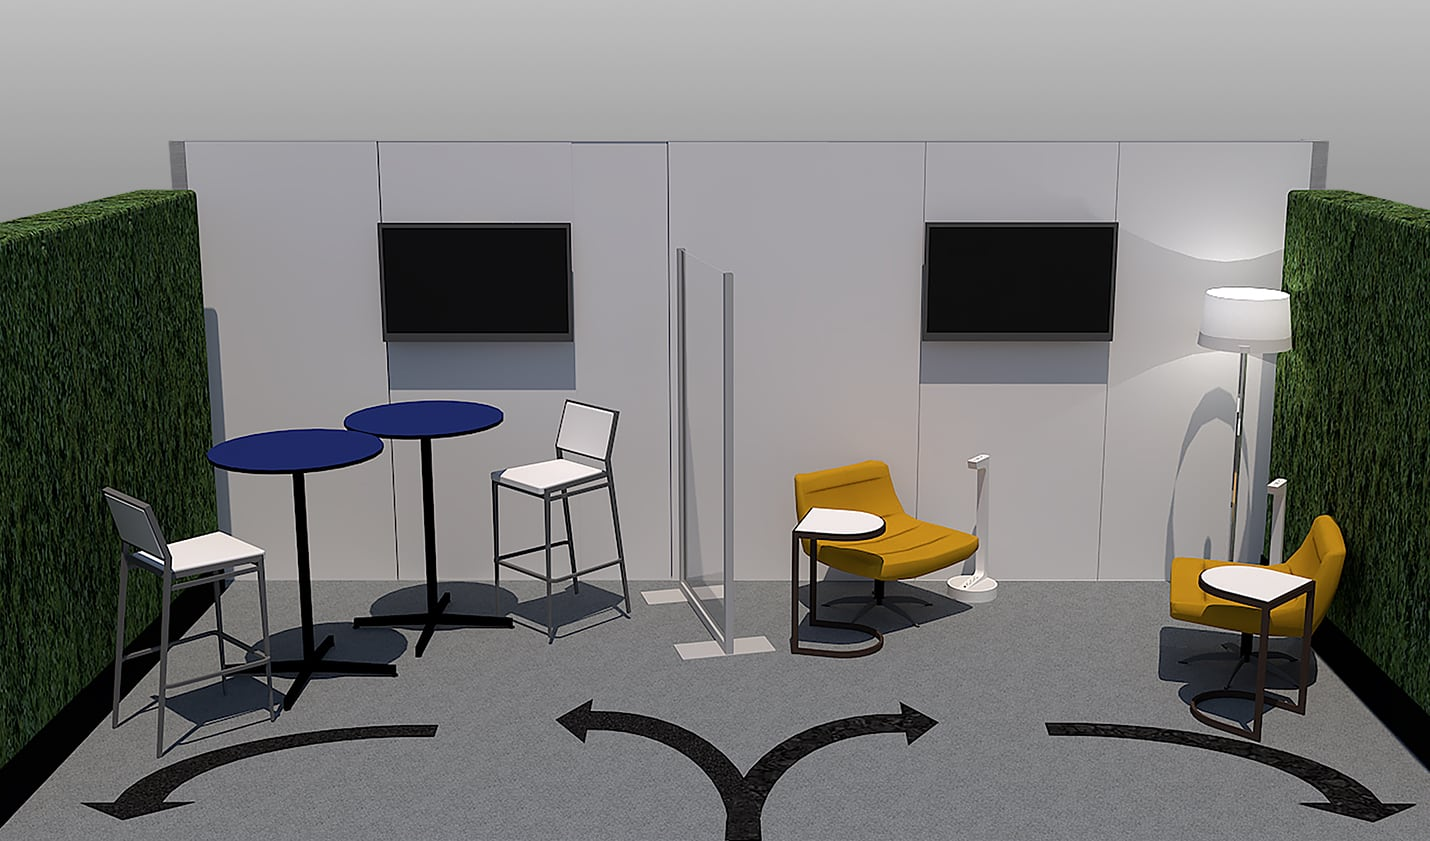 rendering of 10x20 booth space with directional signs